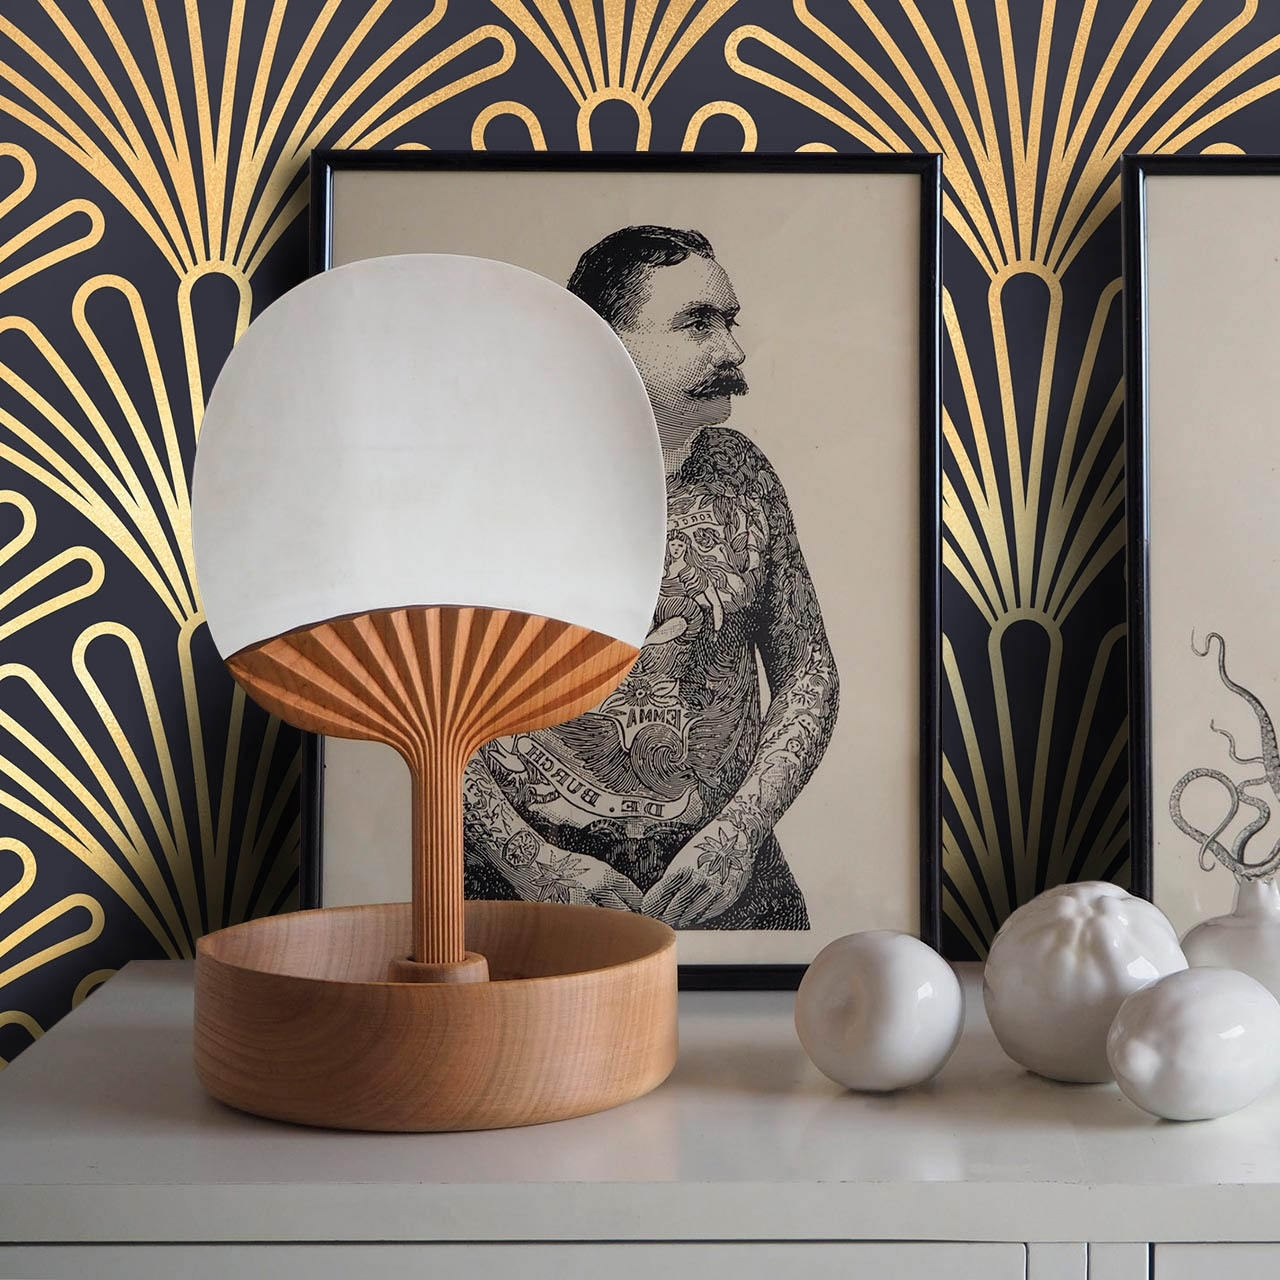 Preferred Art Deco Wall Art Pertaining To Art Deco Wallpaper, 1930S Vintage Wallpaper, Retro Wallpaper (View 8 of 15)